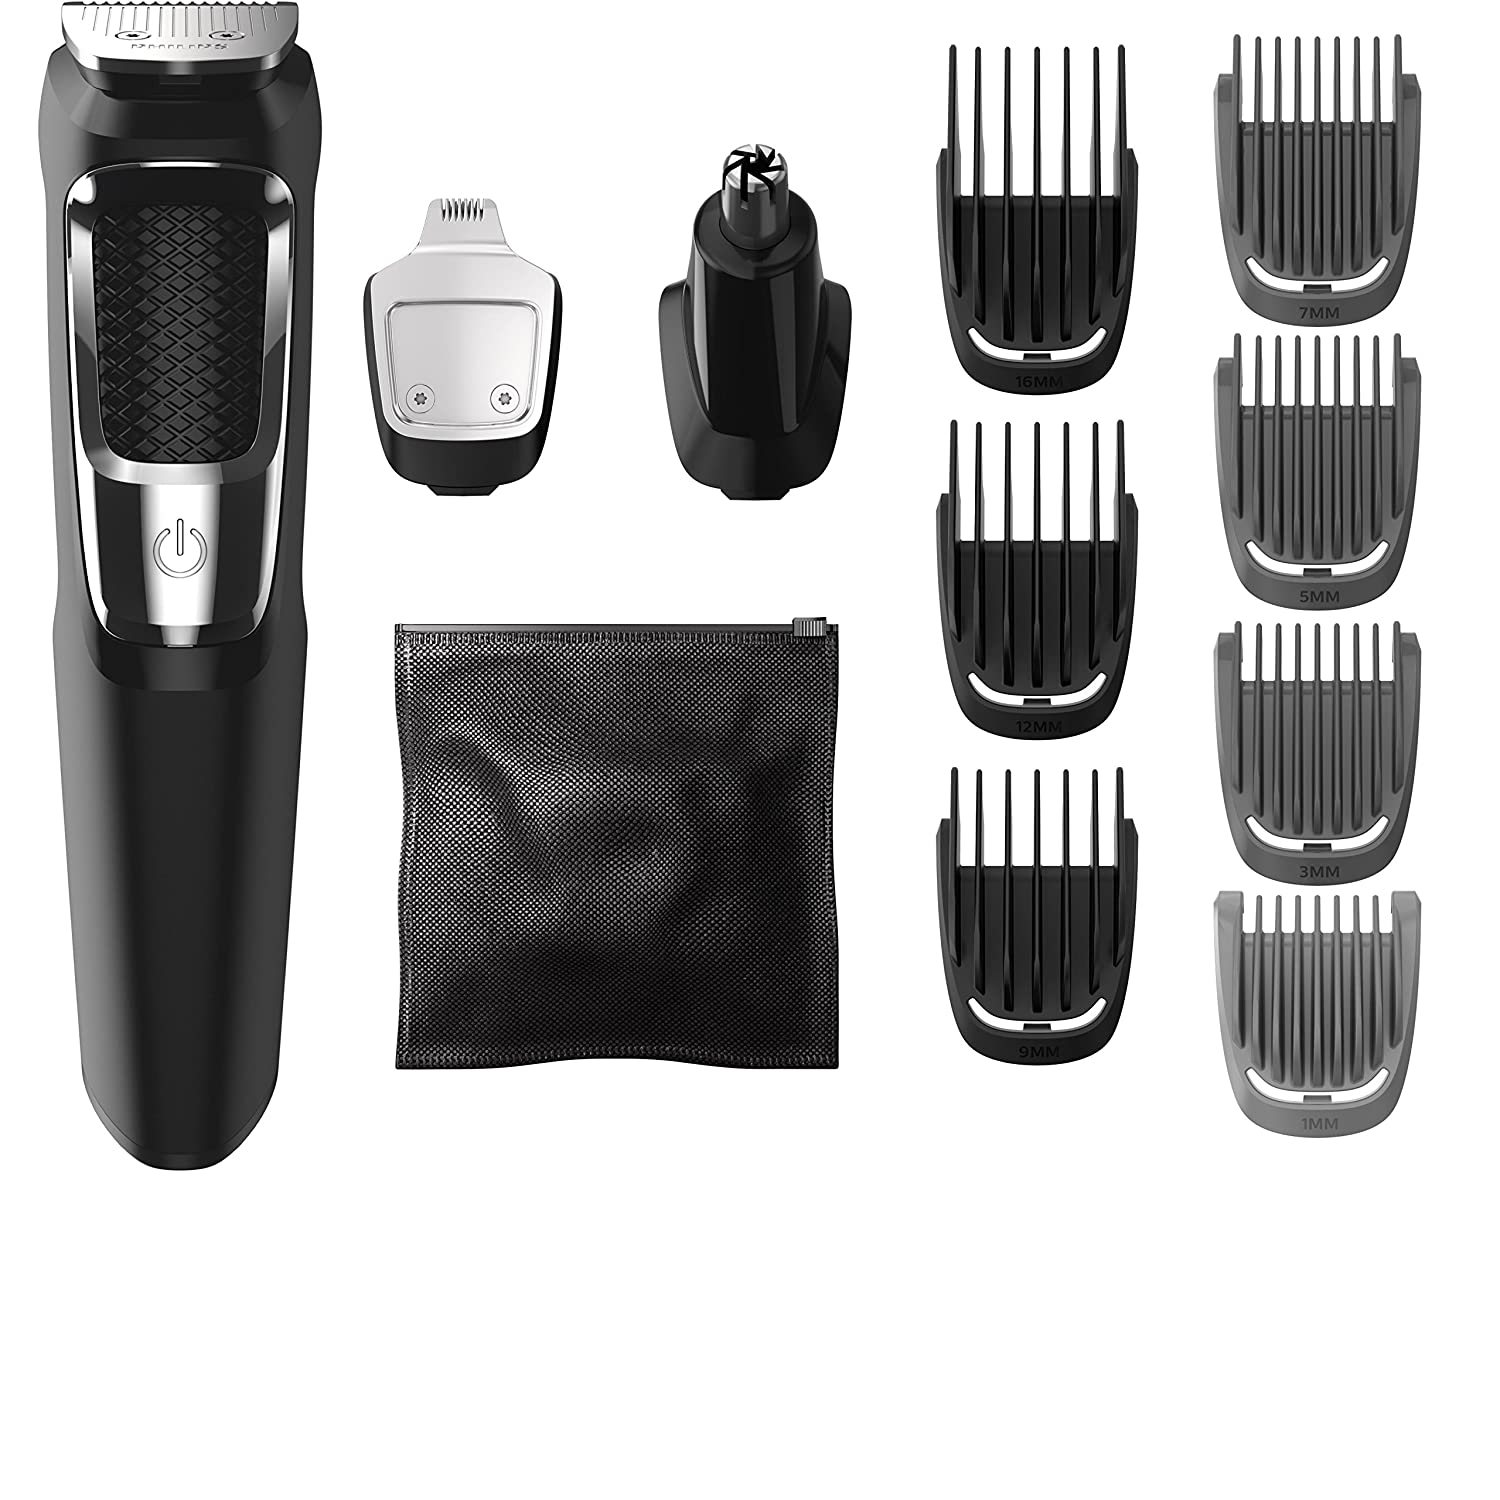 Philips Norelco MG3750 Multigroom All-In-One Series 3000 review